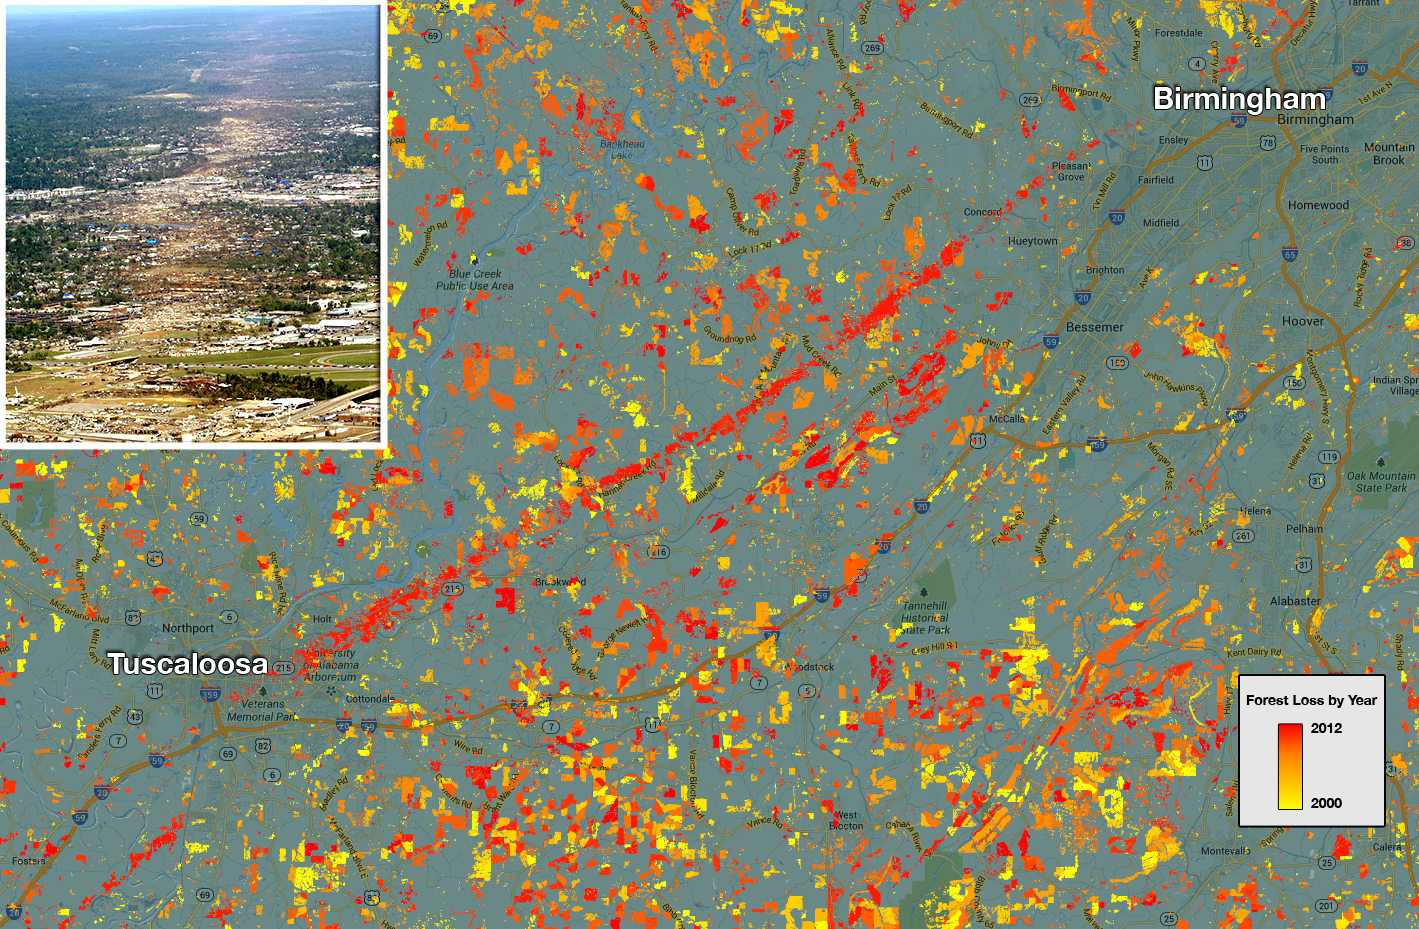 The forest cover maps also capture natural disturbances such as this 2011 tornado path in Alabama. In this map, the colors represent forest loss by year, with yellows representing loss closer to 2000 and reds representing later forest loss, up to 2012. Image Credit: NASA Goddard, based on data from Hansen et al., 2013.